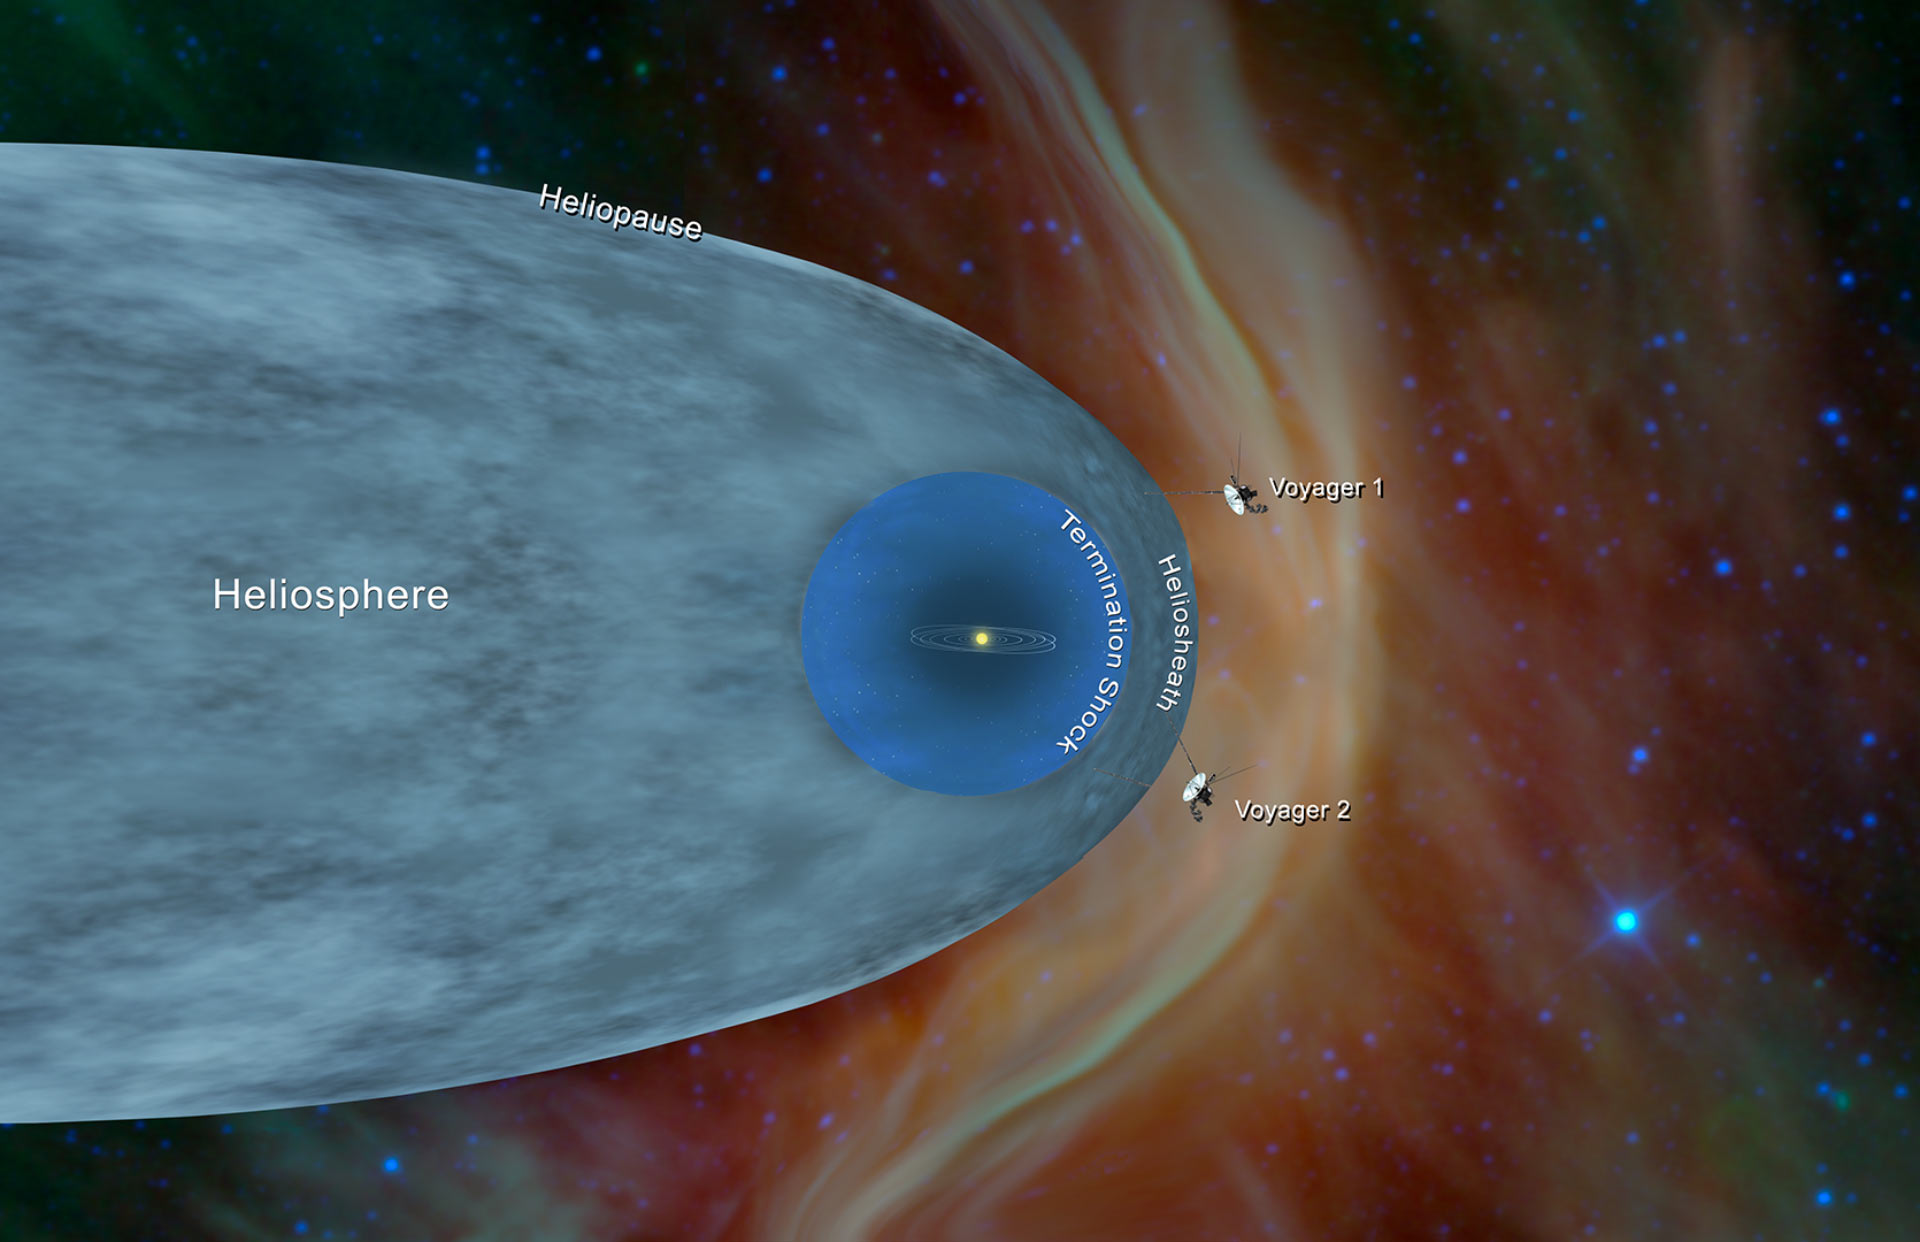 NASA's Voyager 2 probe enters interstellar space after 41-year journey